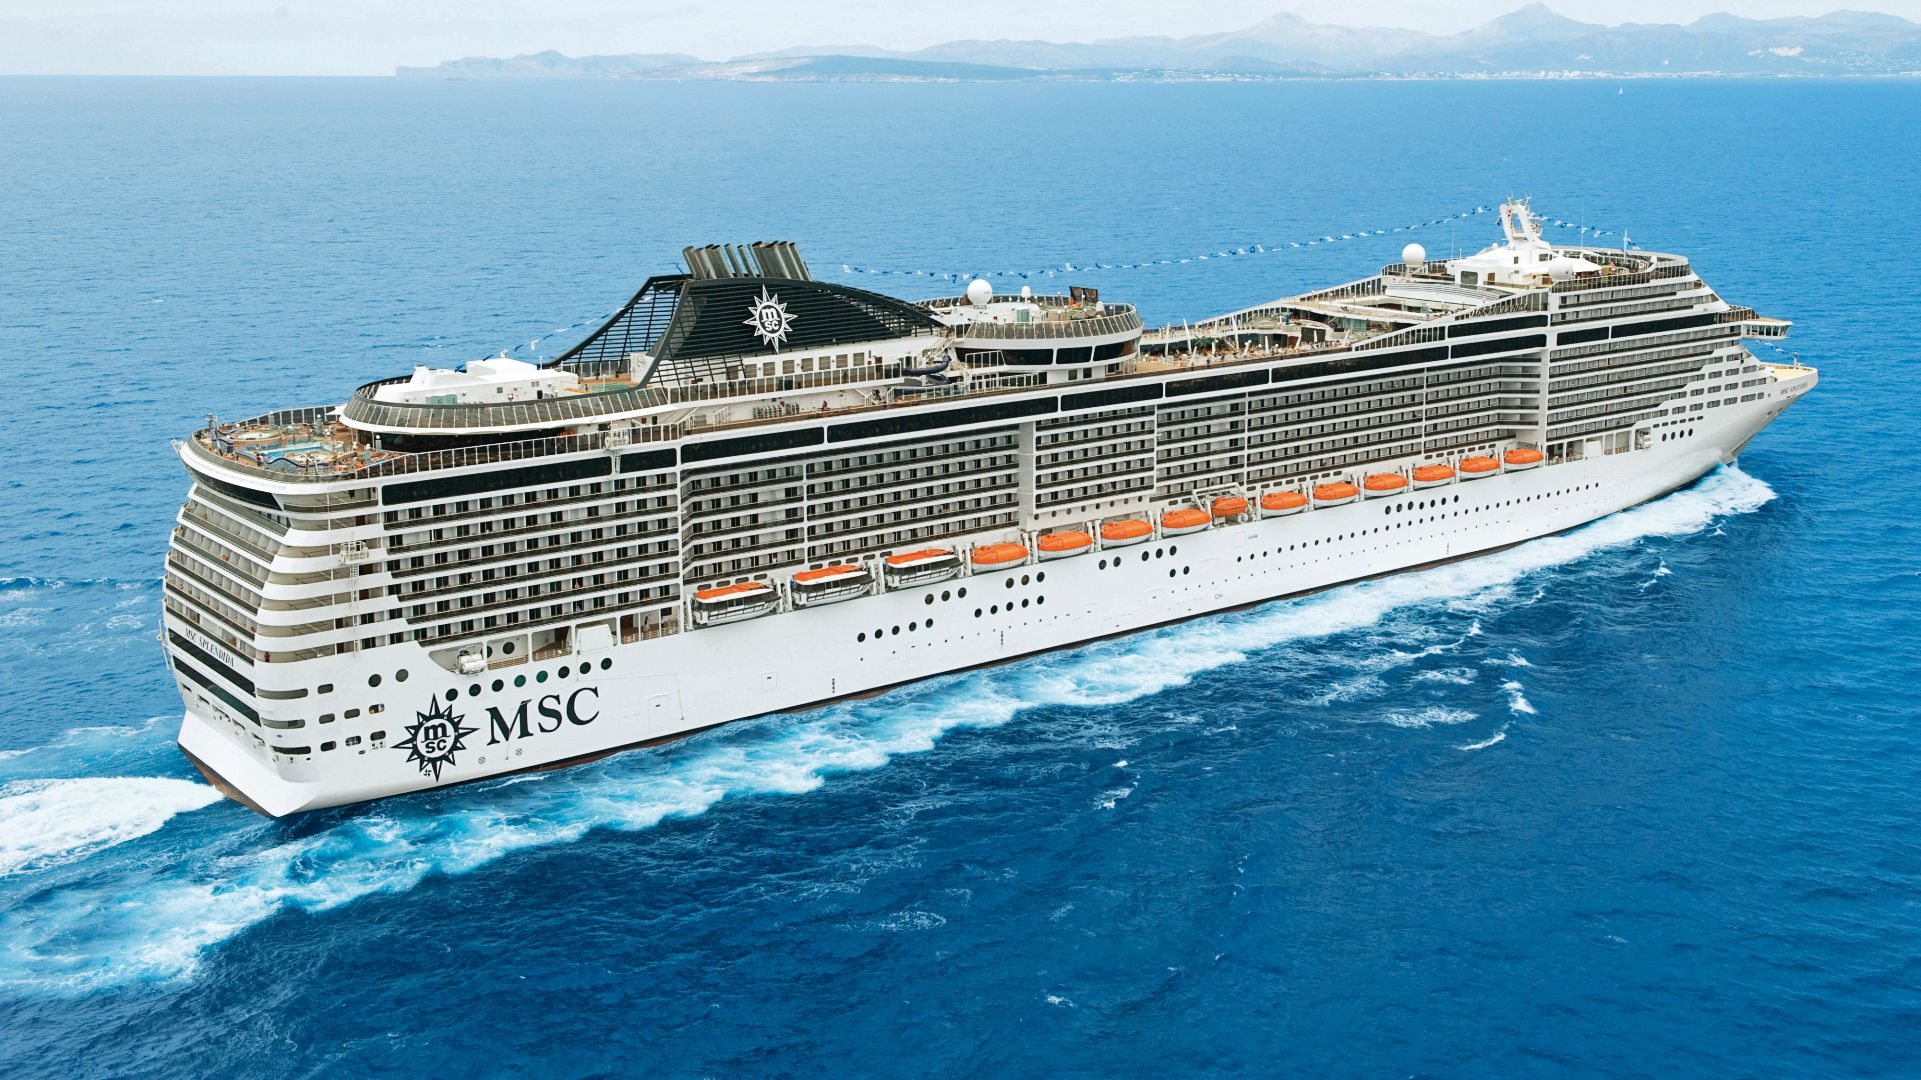 MSC Cruises S.A. has received valuation services